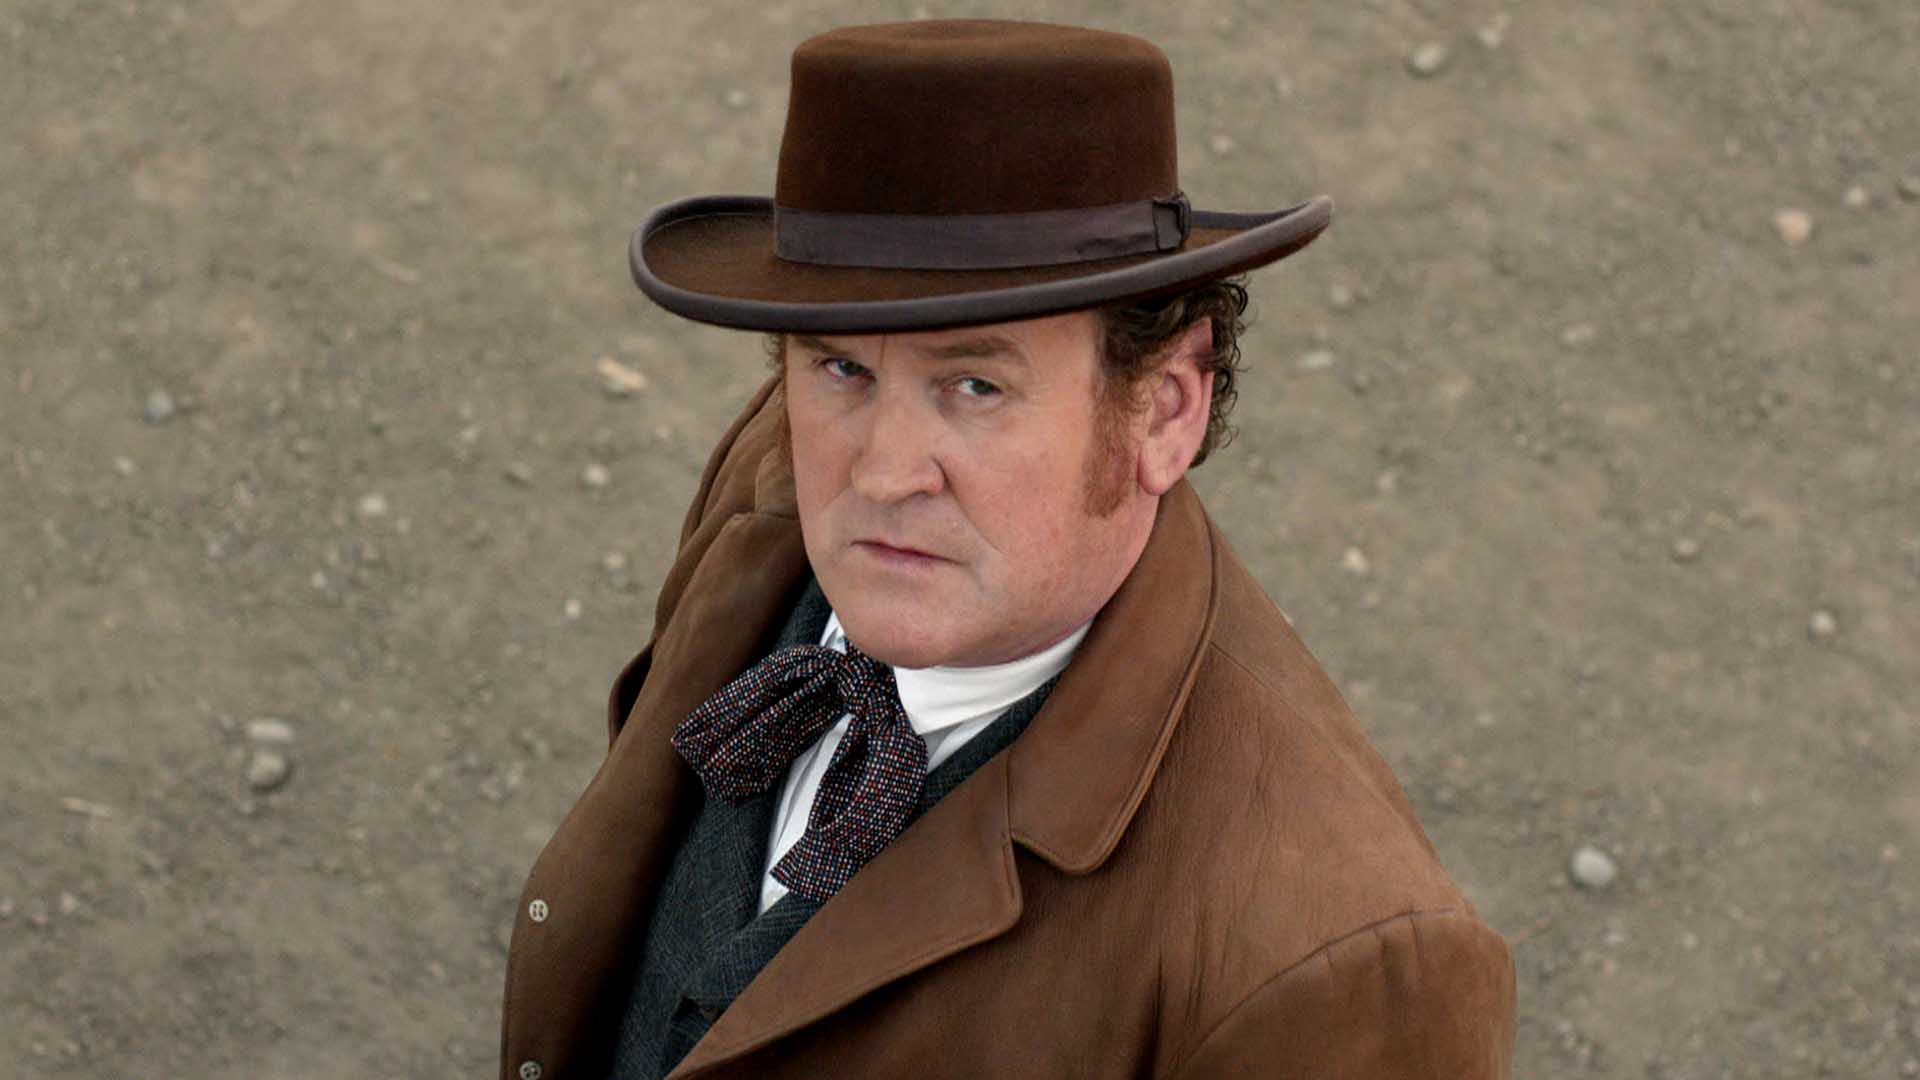 colm meaney minioncolm meaney wiki, colm meaney, colm meaney imdb, colm meaney con air, colm meaney stargate, colm meaney young, colm meaney die hard 2, colm meaney net worth, colm meaney movies and tv shows, colm meaney twitter, colm meaney interview, colm meaney hell on wheels, colm meaney minion, colm meaney height, colm meaney martin mcguinness, colm meaney sinn fein, colm meaney mallorca, colm meaney wife, colm meaney last of the mohicans, colm meaney the van